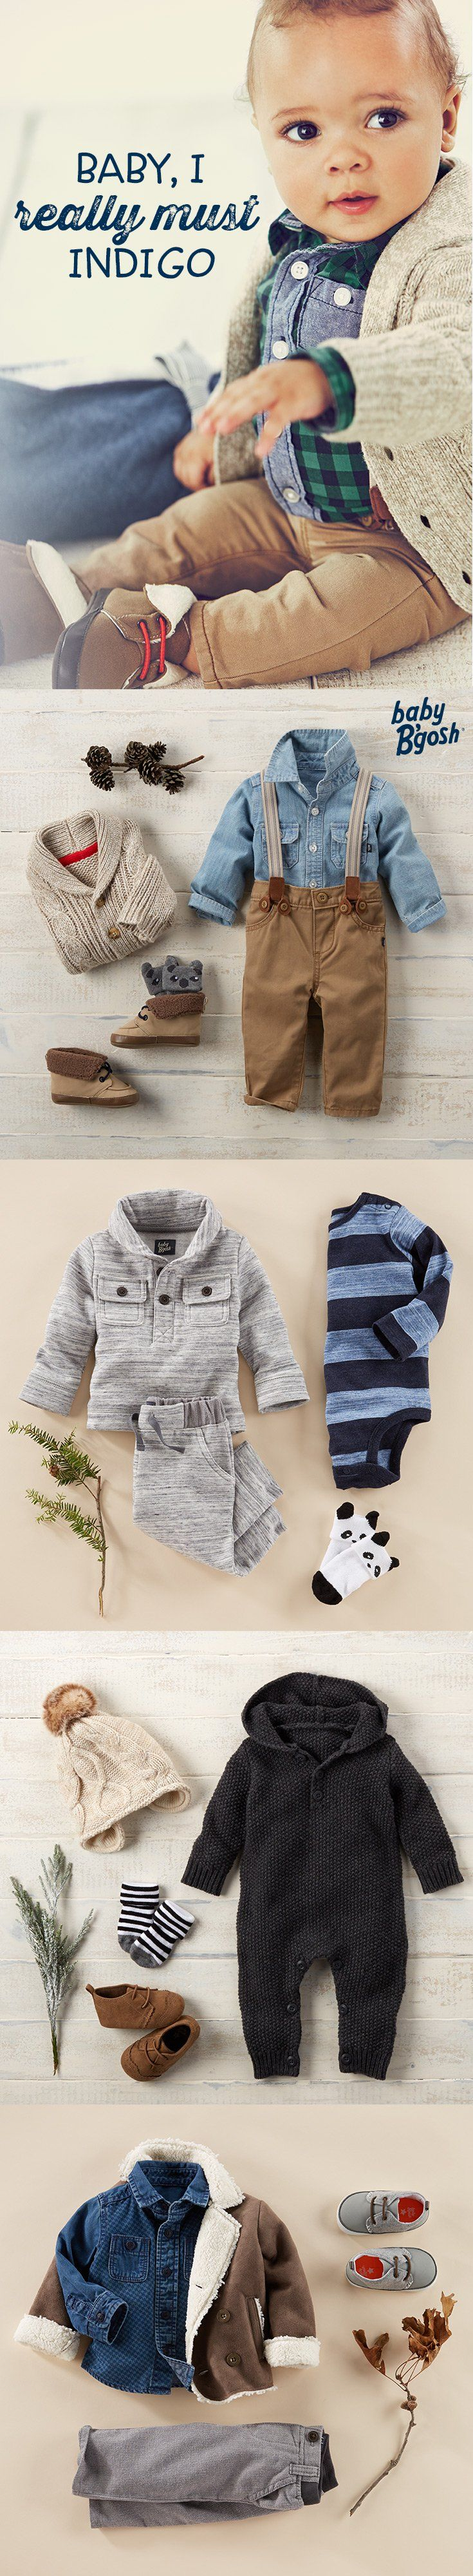 BABY, I REALLY MUST INDIGO: Baby, it's cold outside! A little indigo goes a long way this season. Layer these looks with neutrals like these cozy cable-knit cardigans or a sherpa rancher jackets.Take a peek at OshKosh for more from Baby B'gosh.